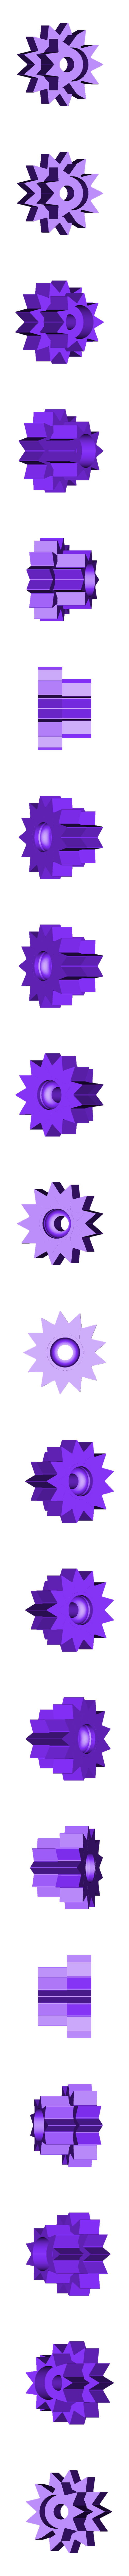 15mmGear.stl Download free STL file Crazy Cogs - Gear Play Set • 3D printer template, PapaBravo